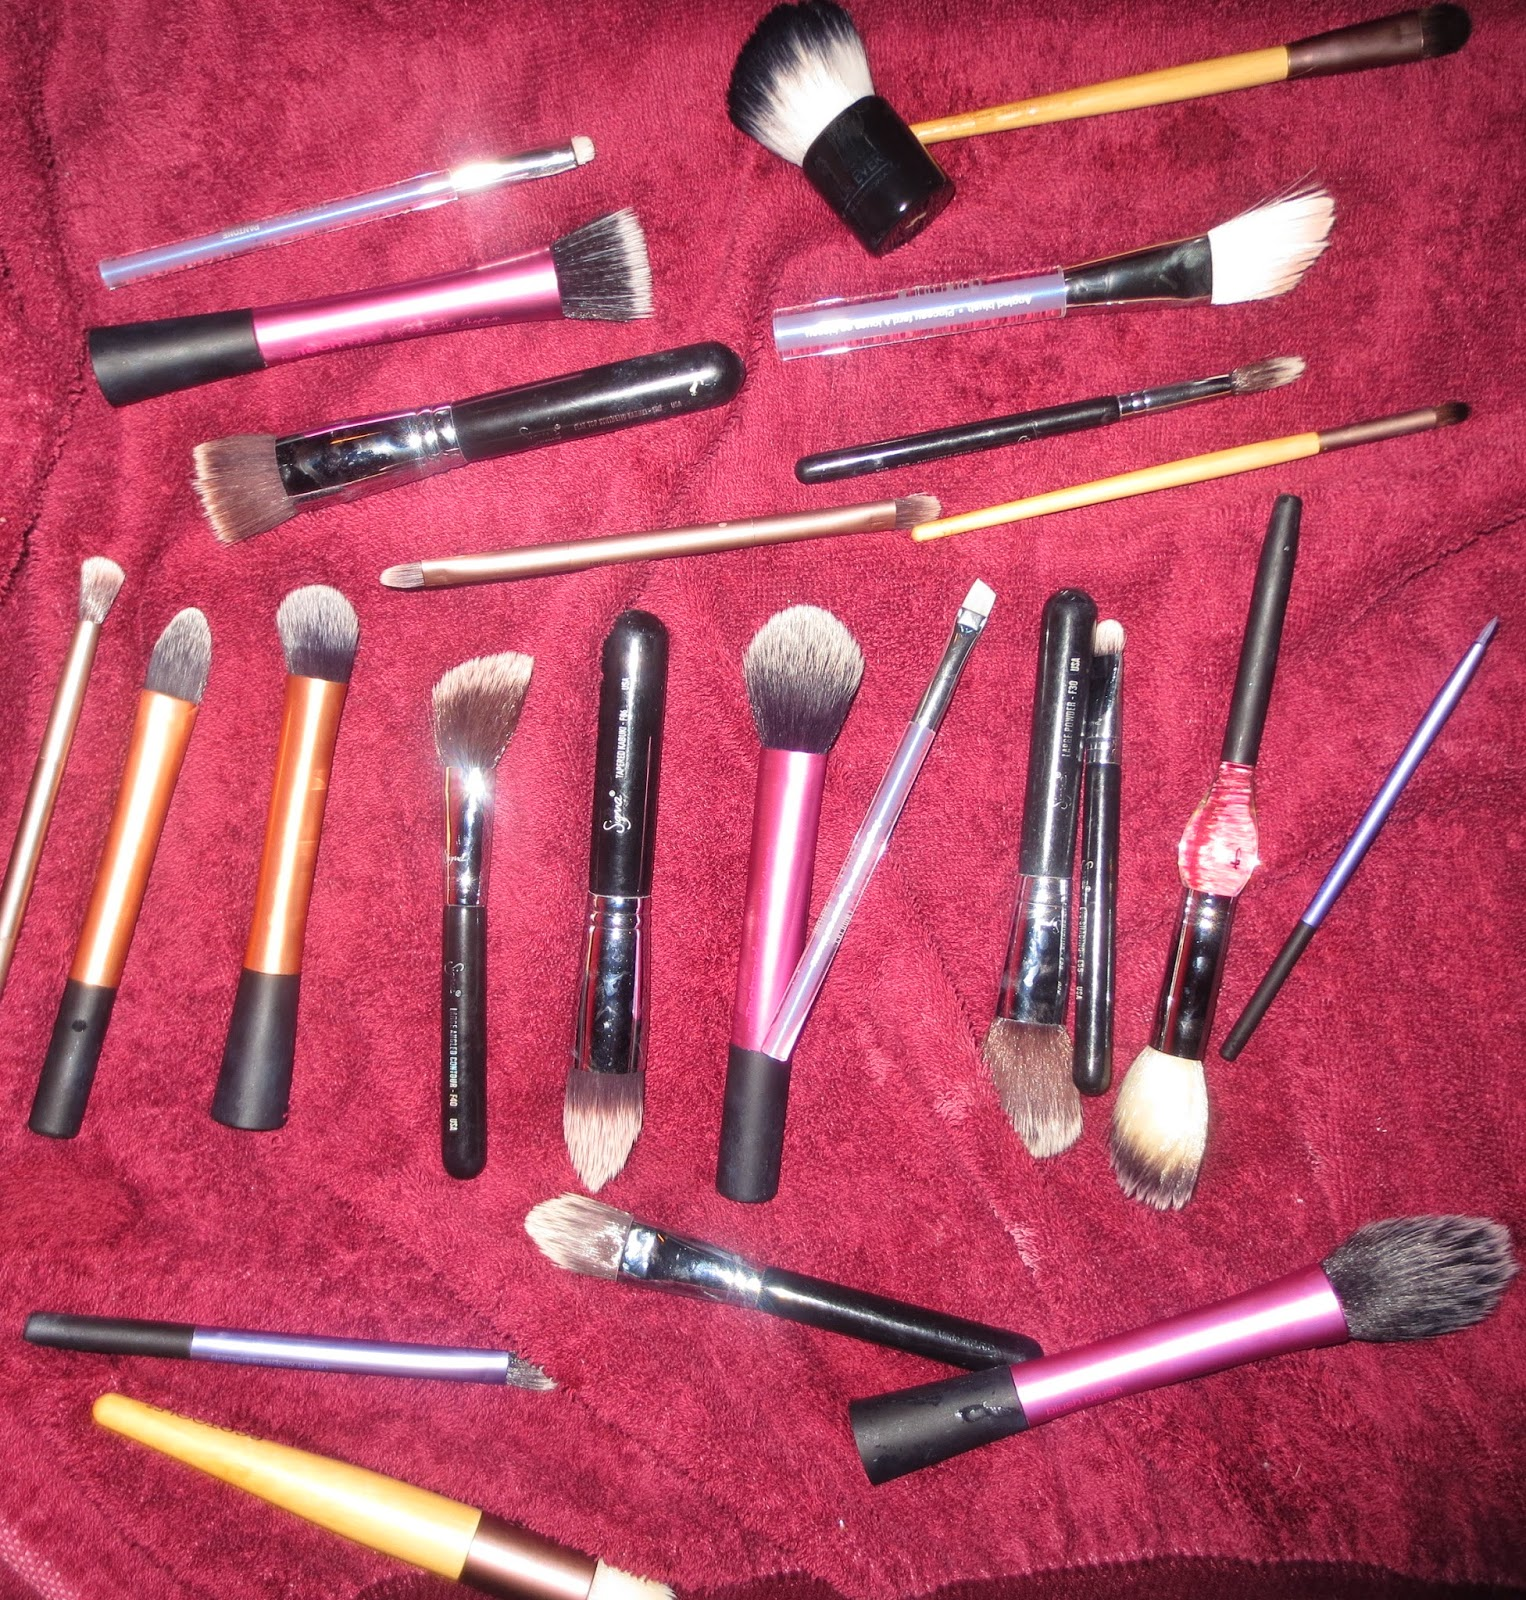 Makeup Brushes Drying on Towel